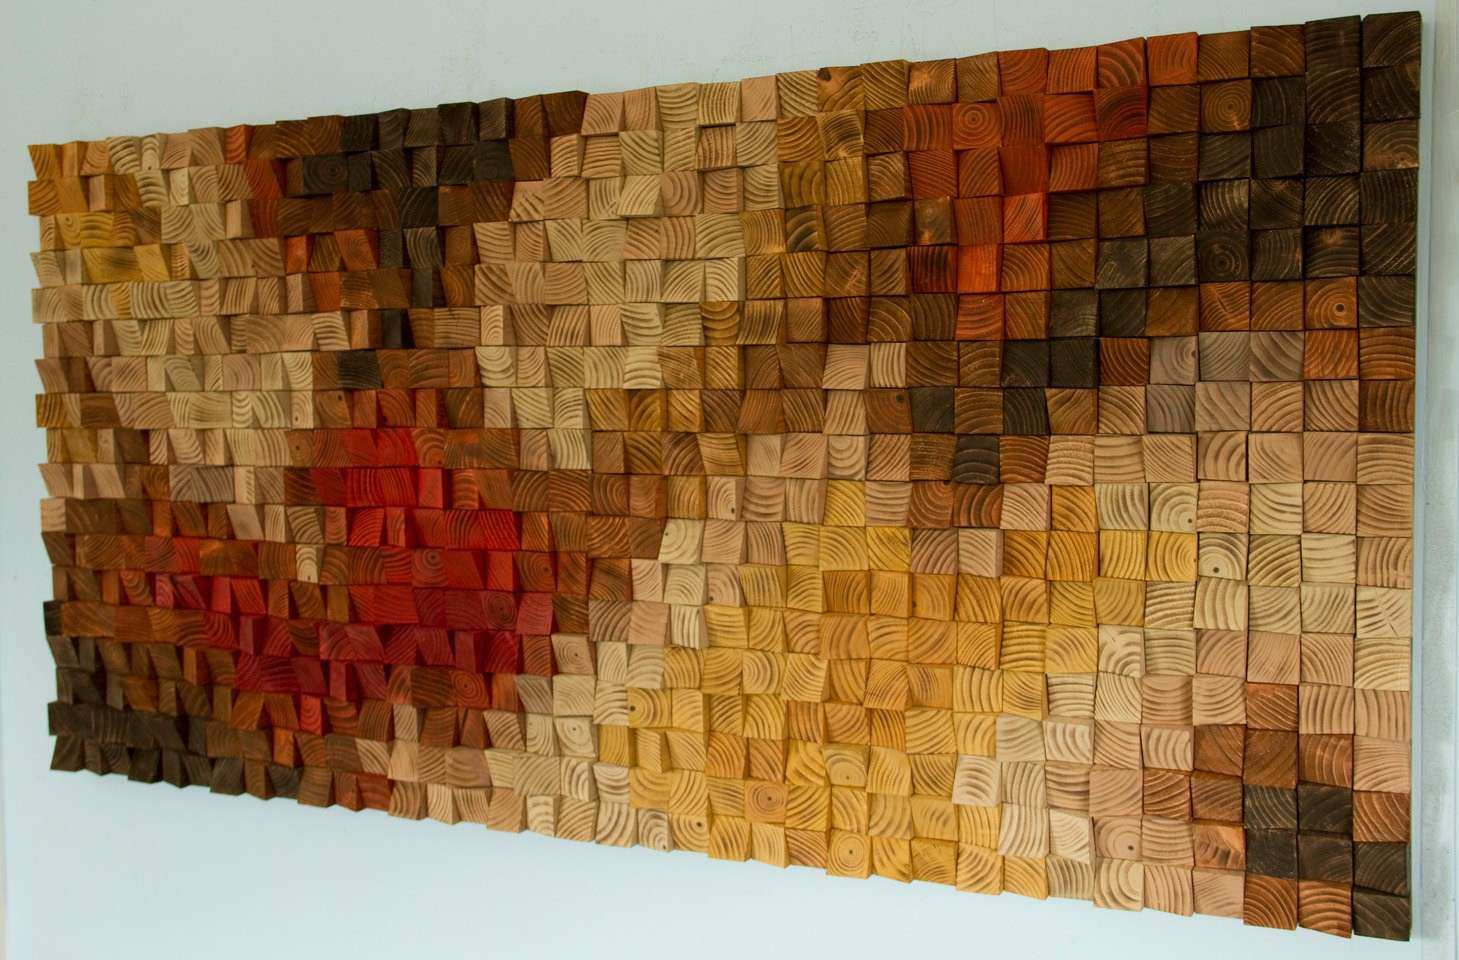 Rustic wood wall Art wood wall sculpture abstract